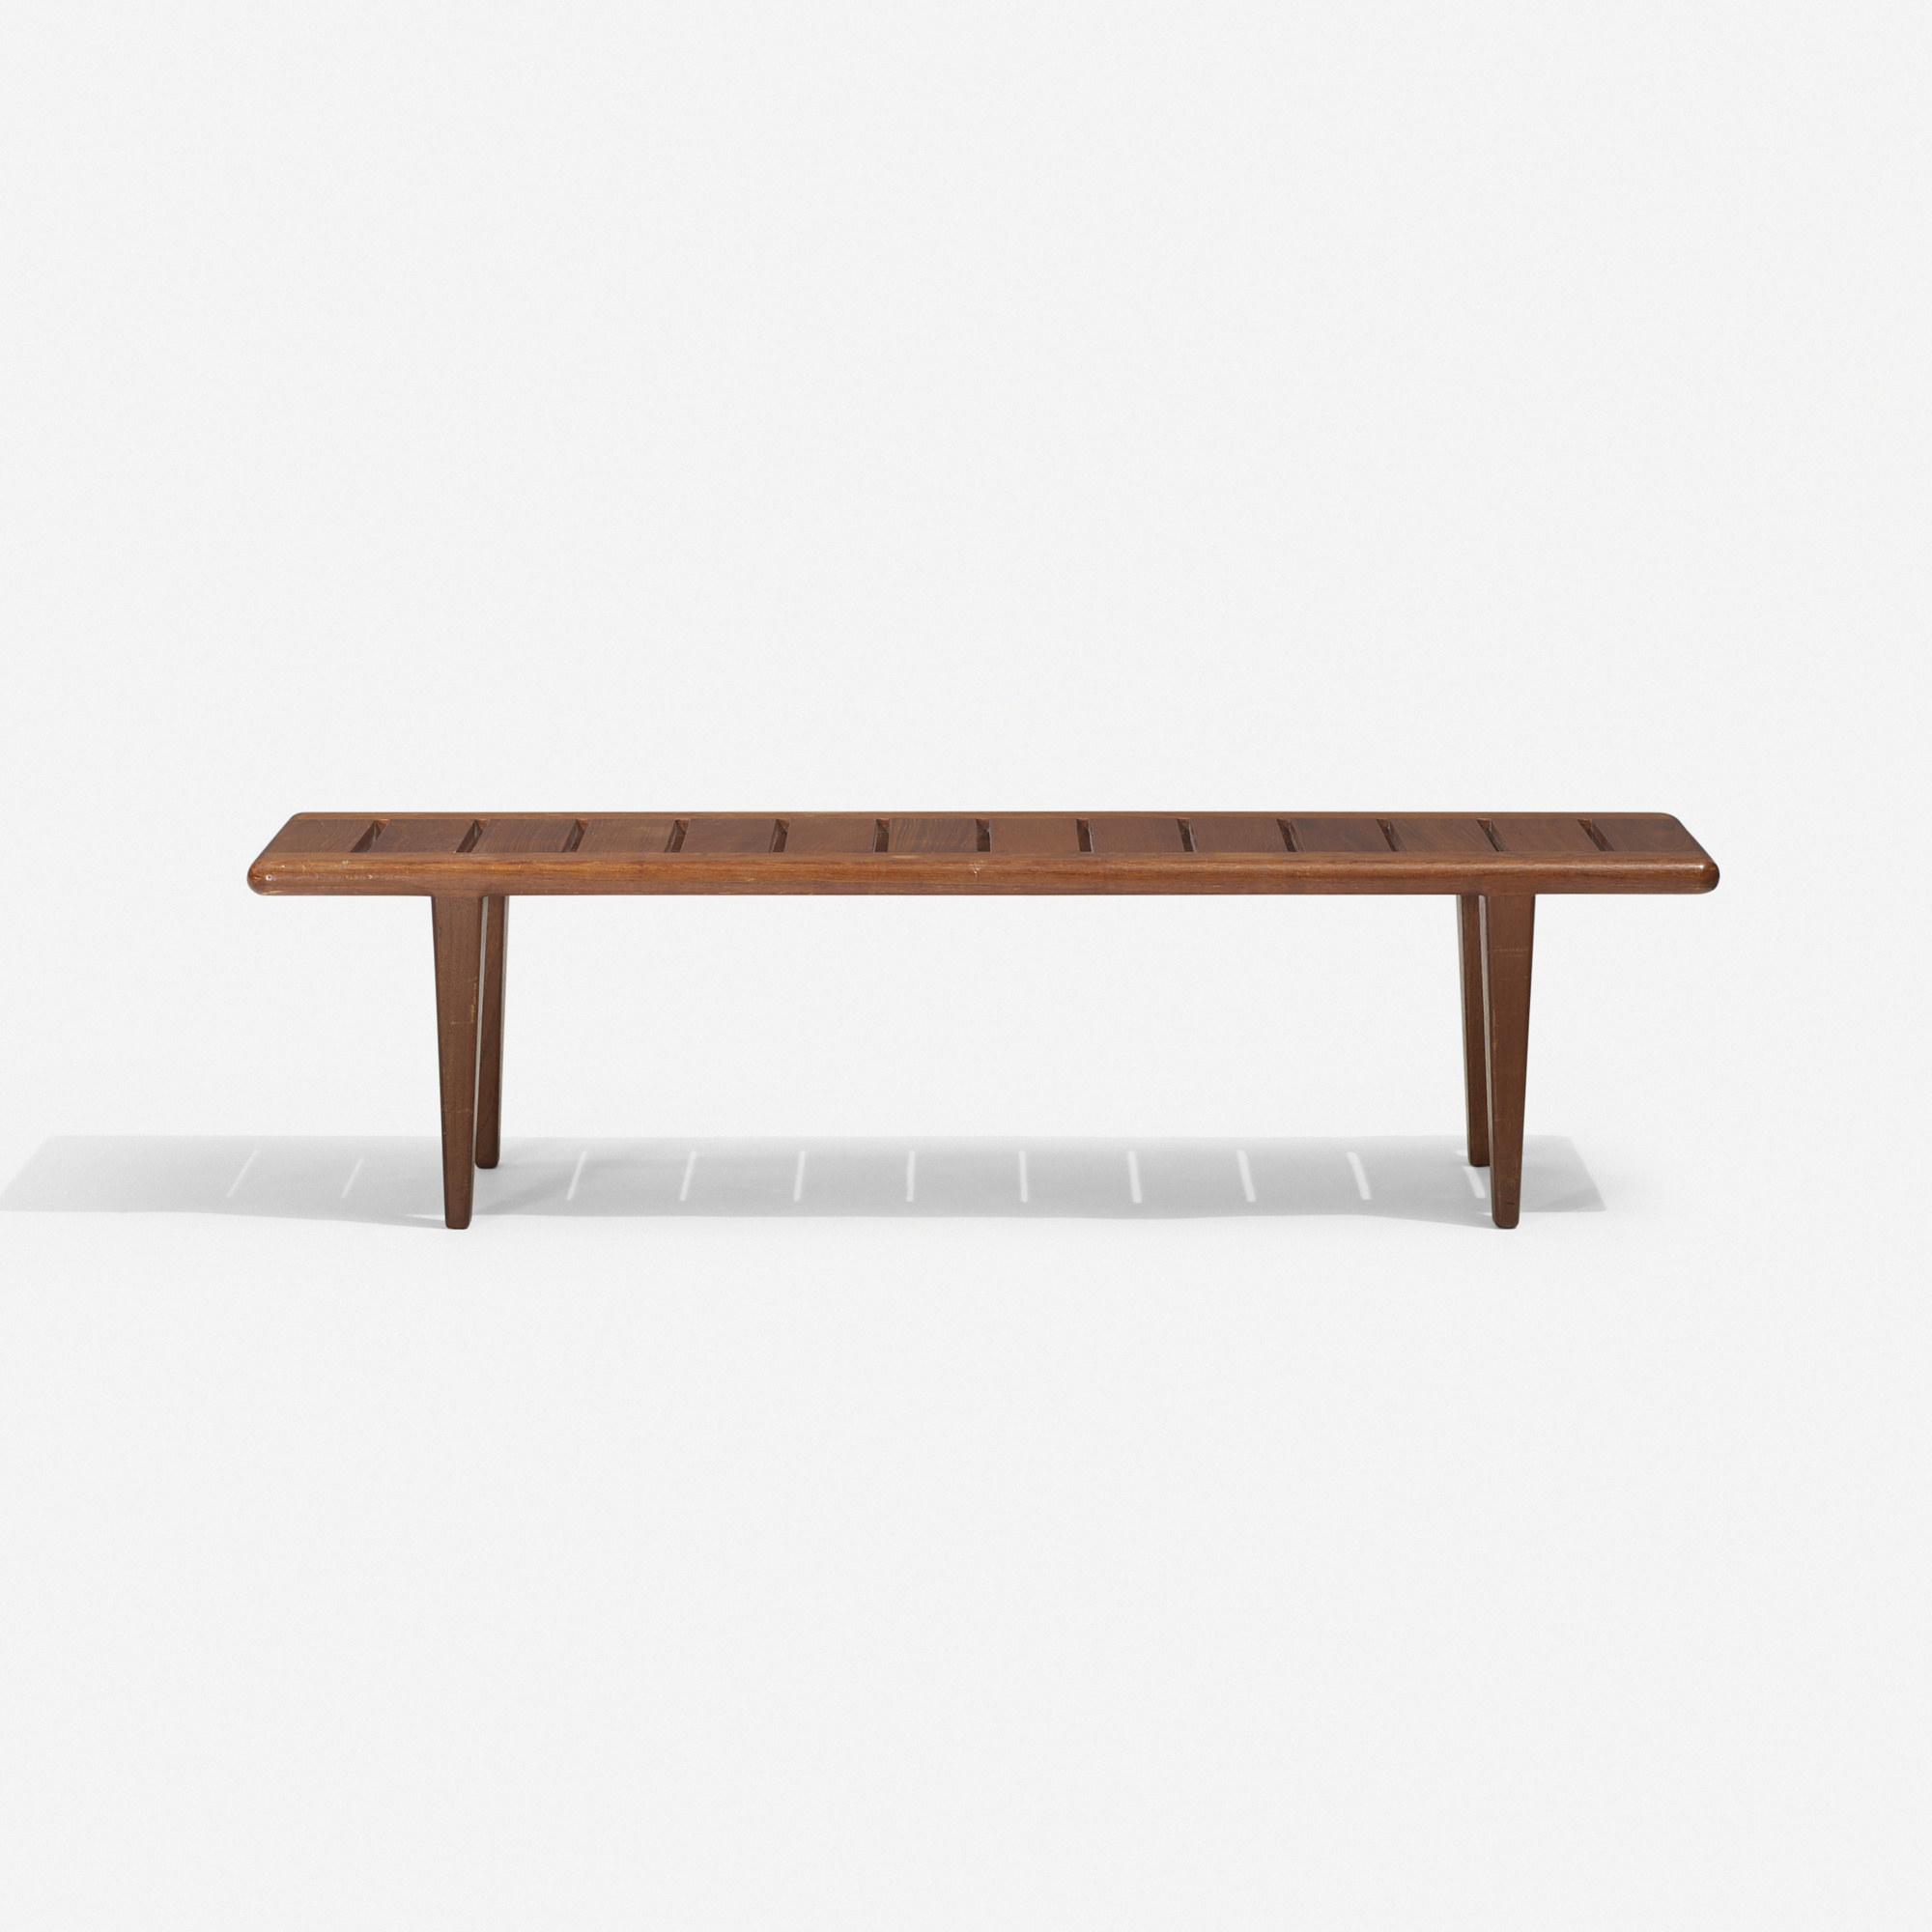 319: Hans J. Wegner / slatted bench (1 of 2)